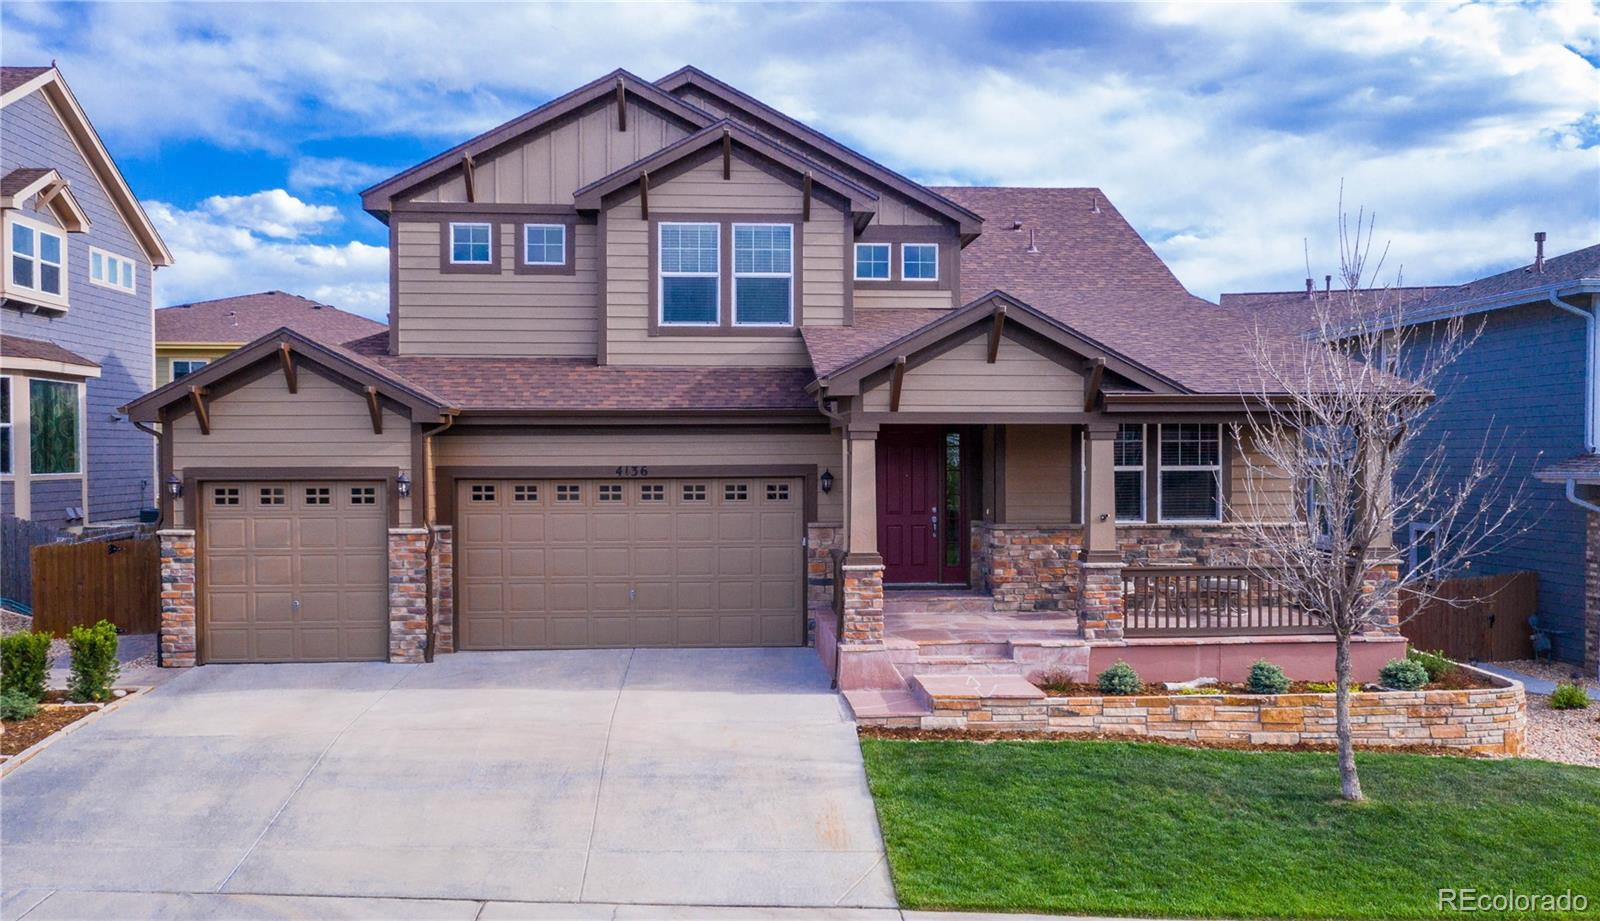 4136 E 139 Drive Property Photo - Thornton, CO real estate listing